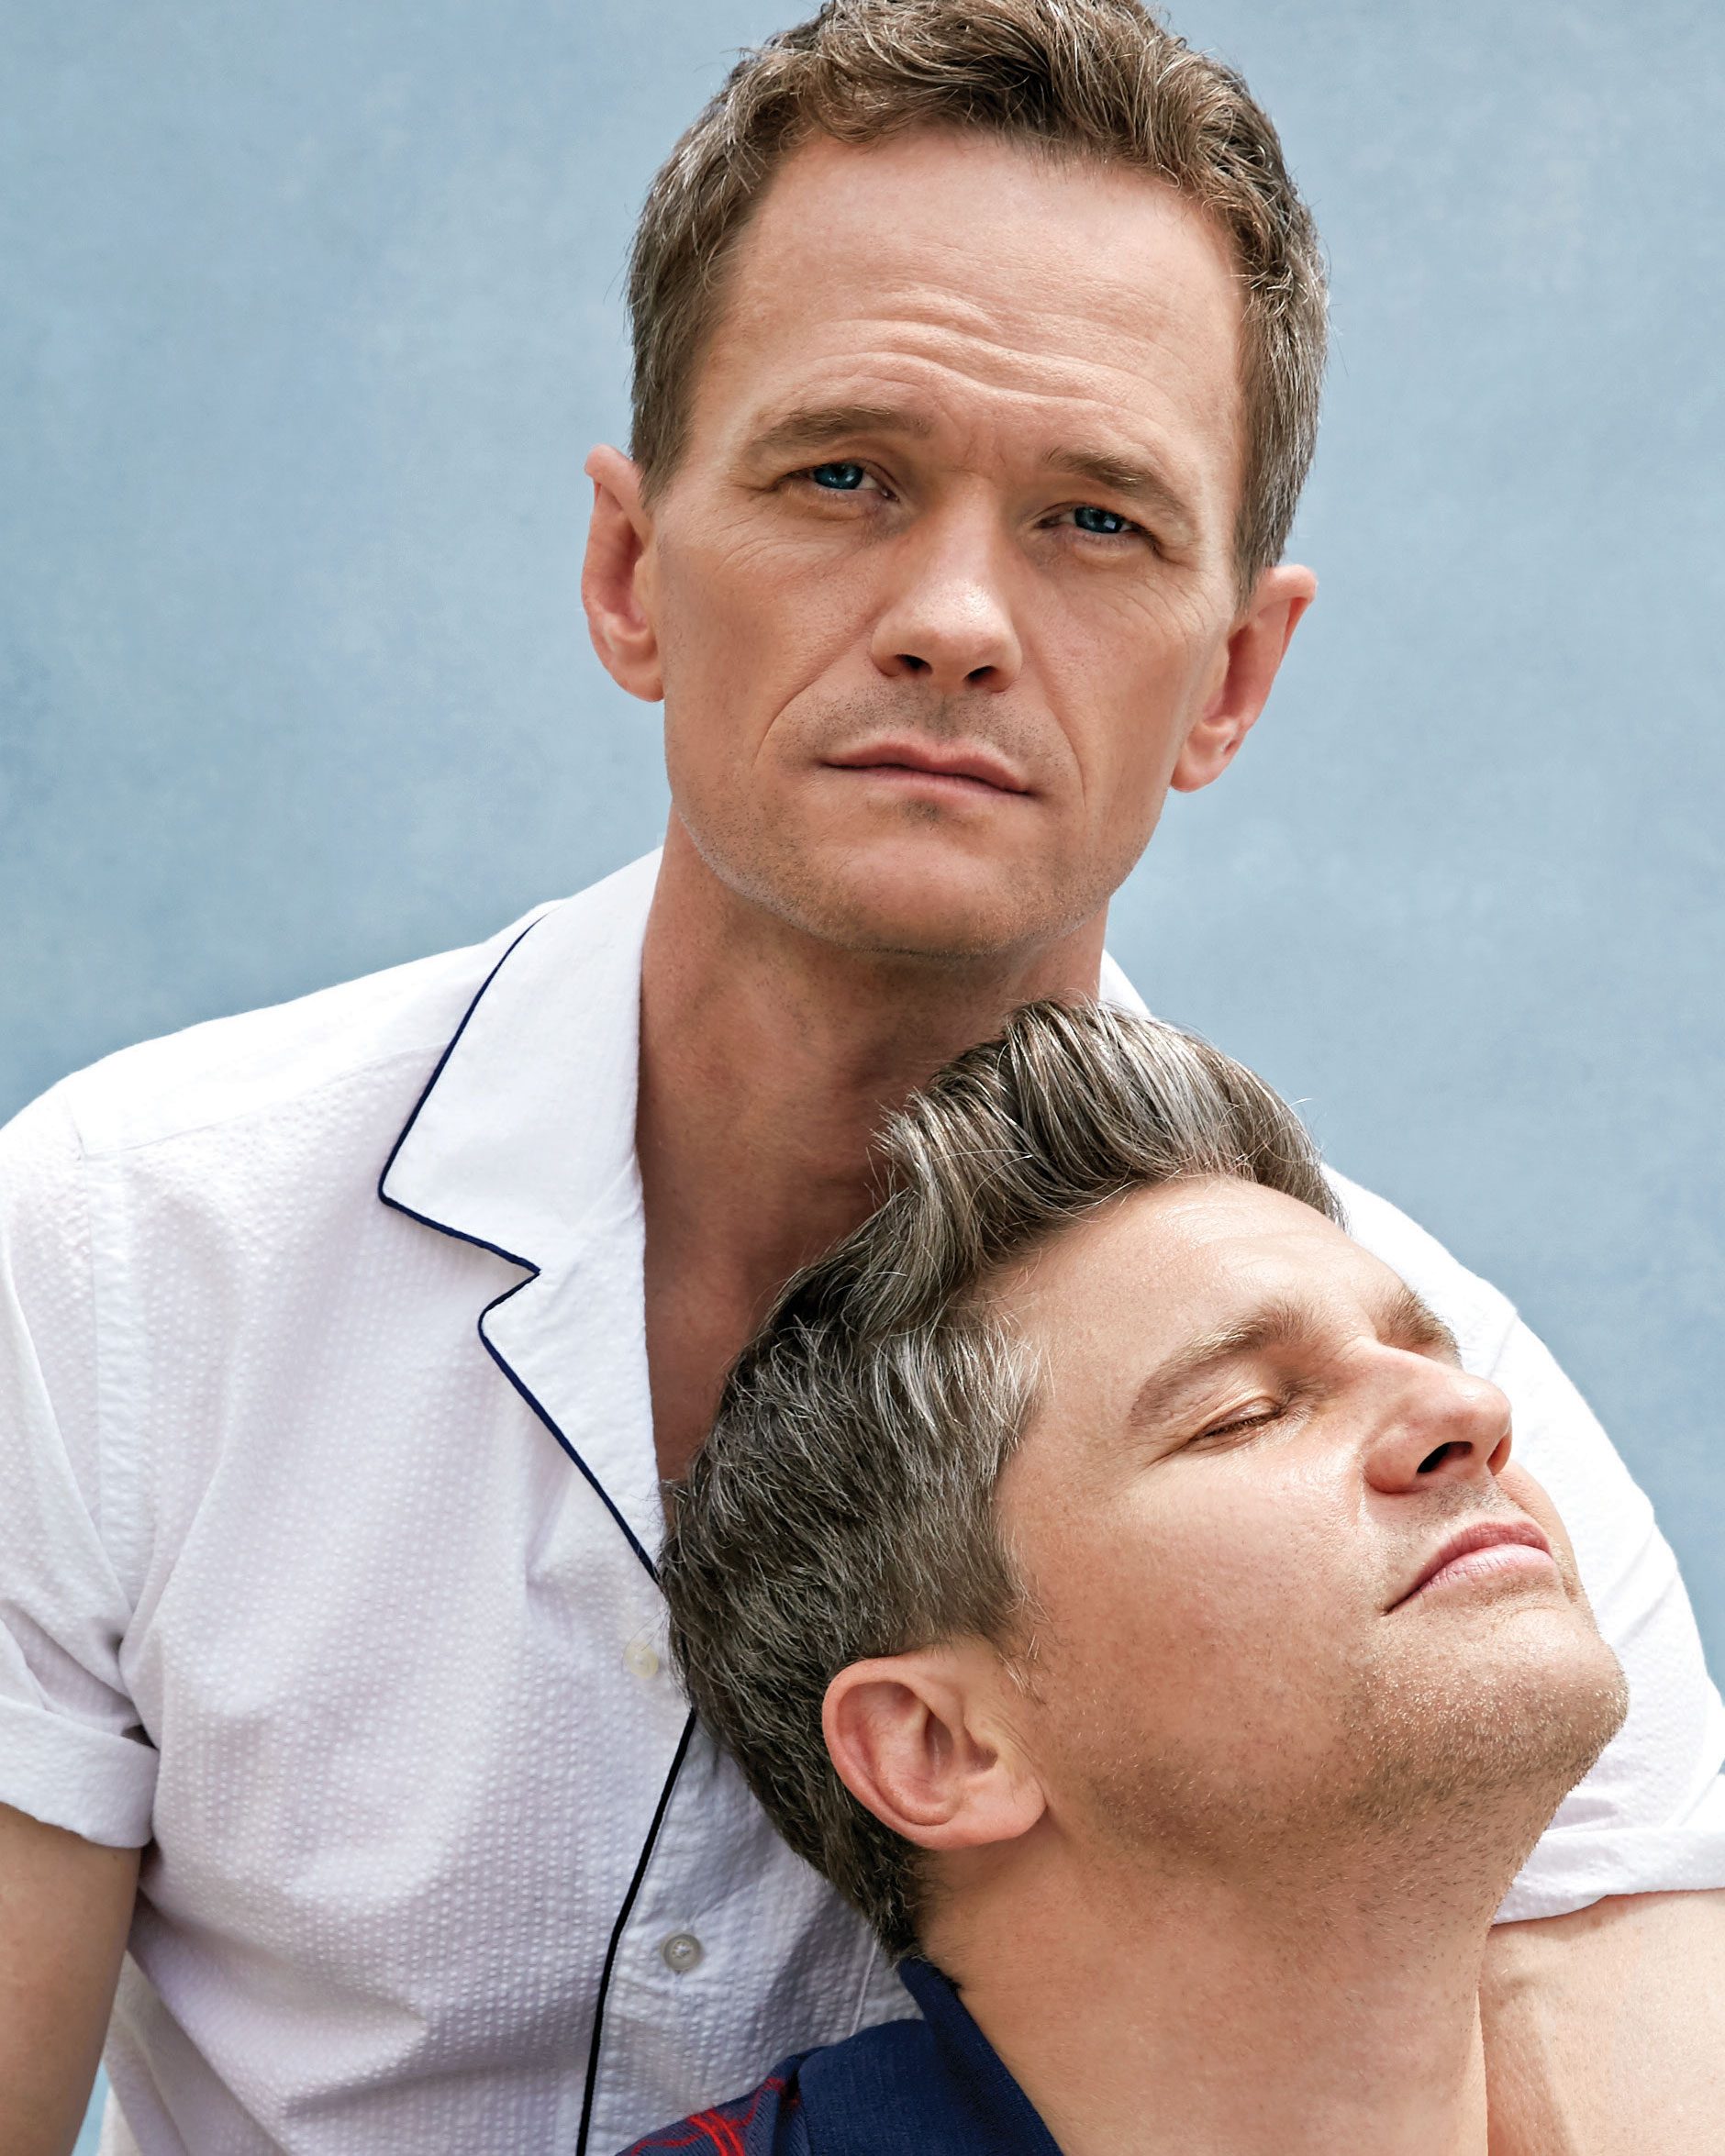 nph-and-db.jpg